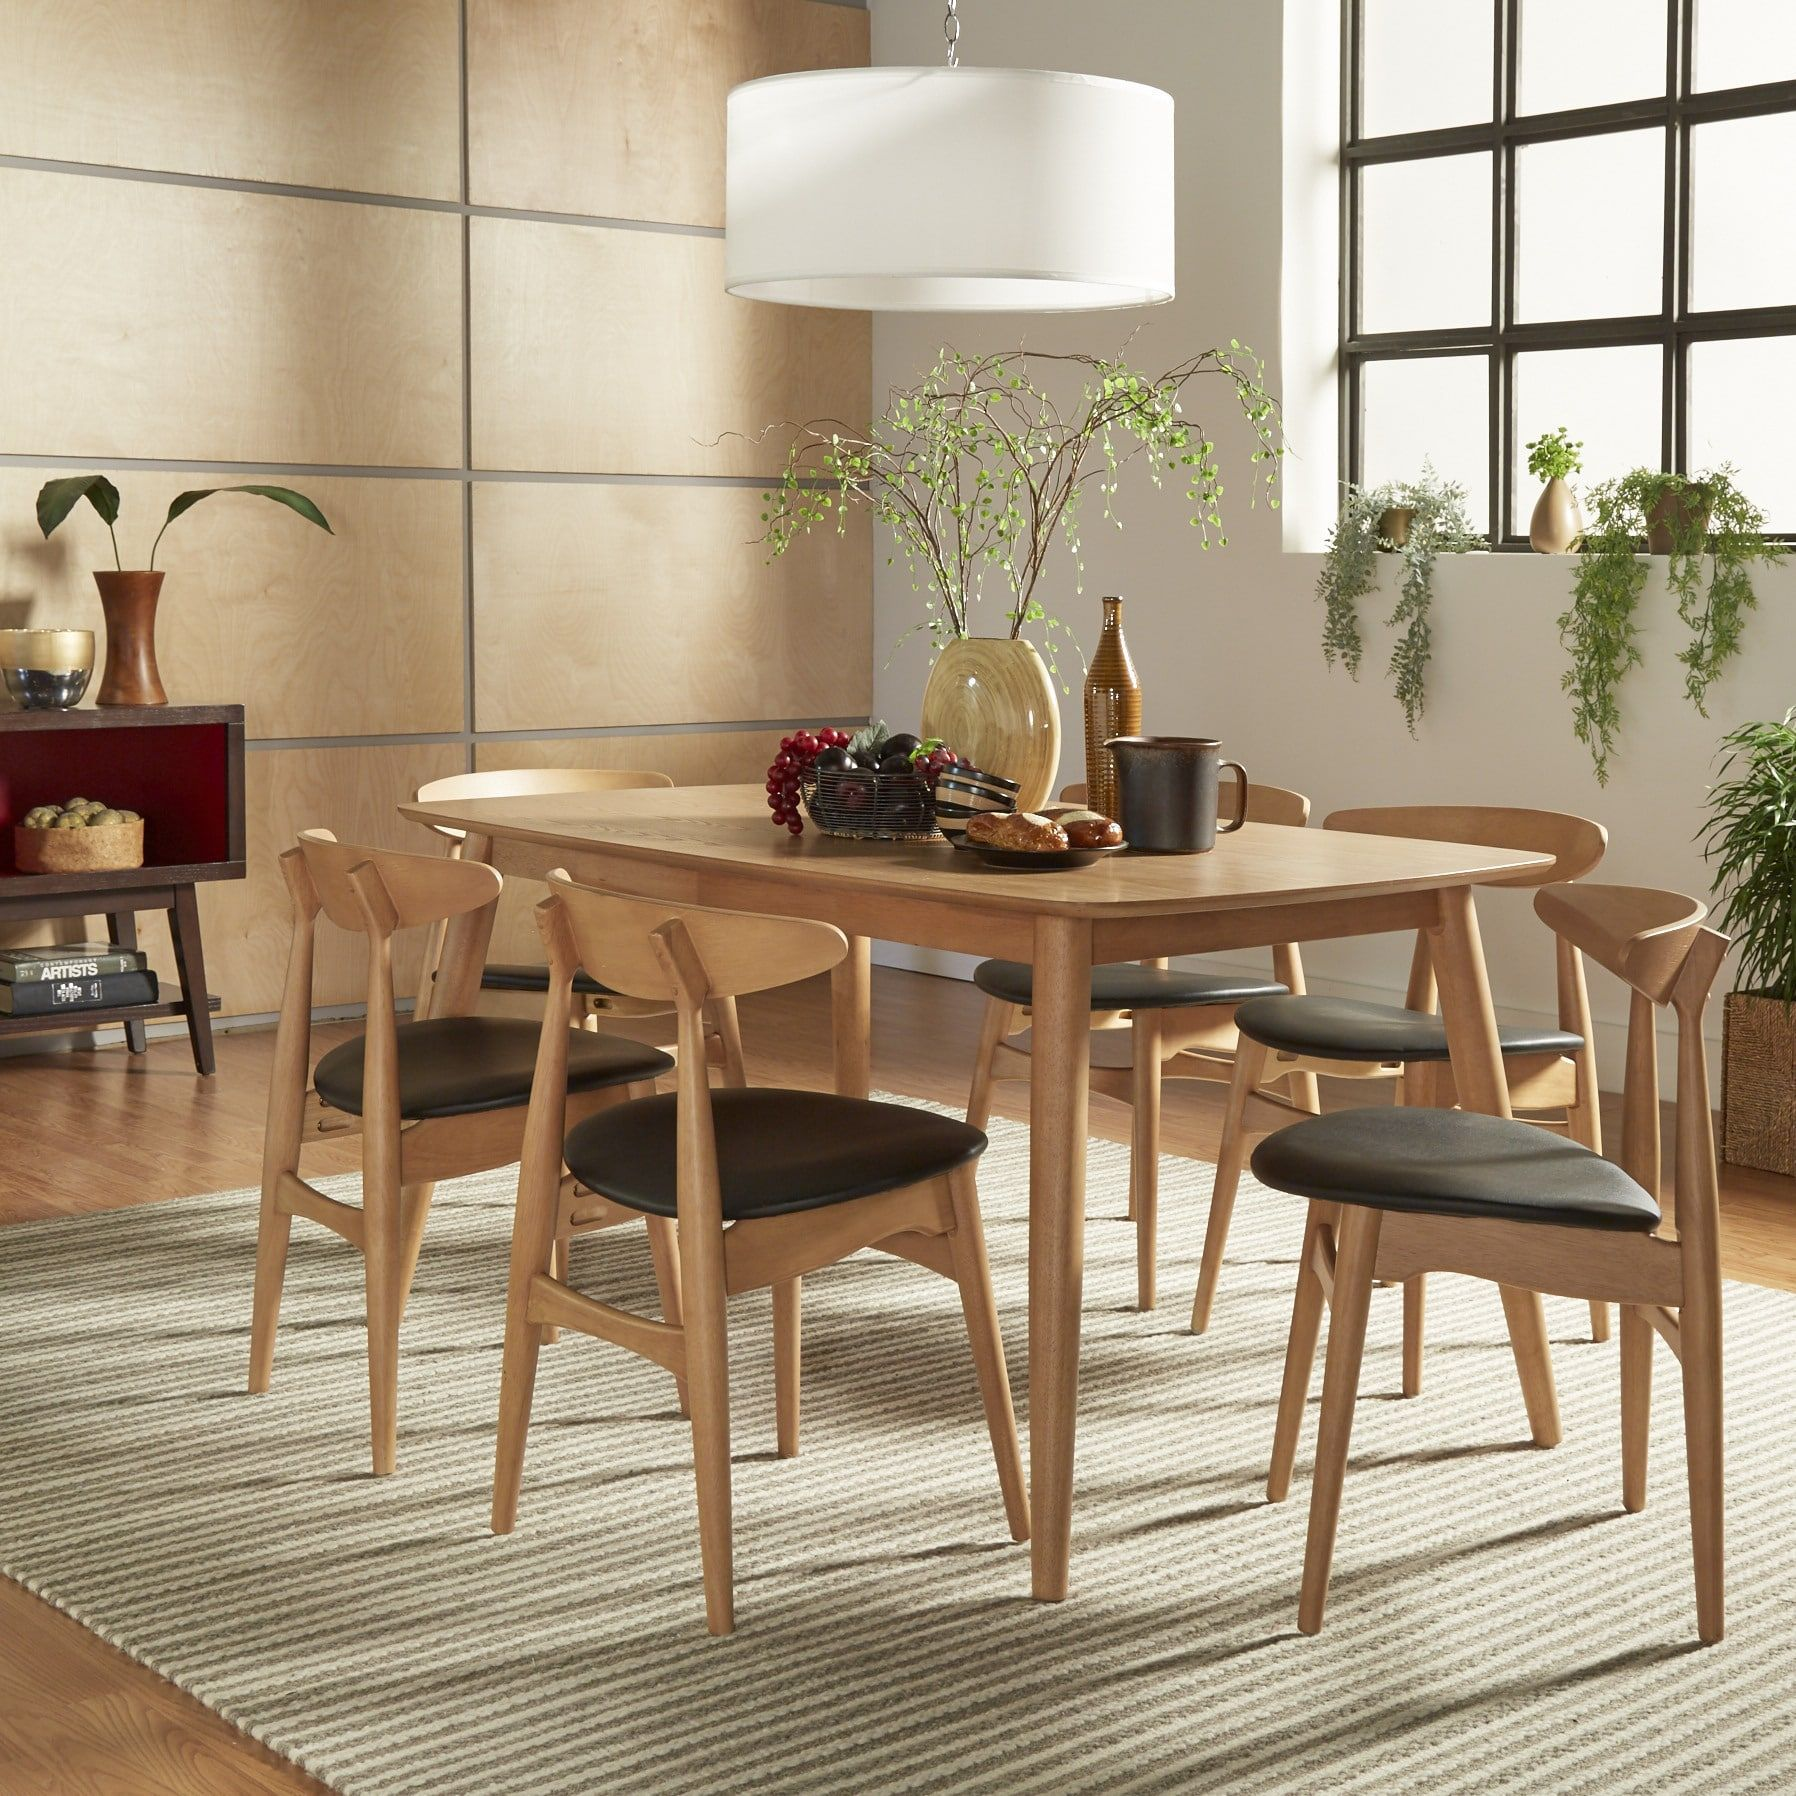 Norwegian Danish Modern Oak Tapered Dining Set iNSPIRE Q Modern ([7PC- 59  table]-Beige Fabric with 6 chairs), Brown, Size 7-Piece Sets